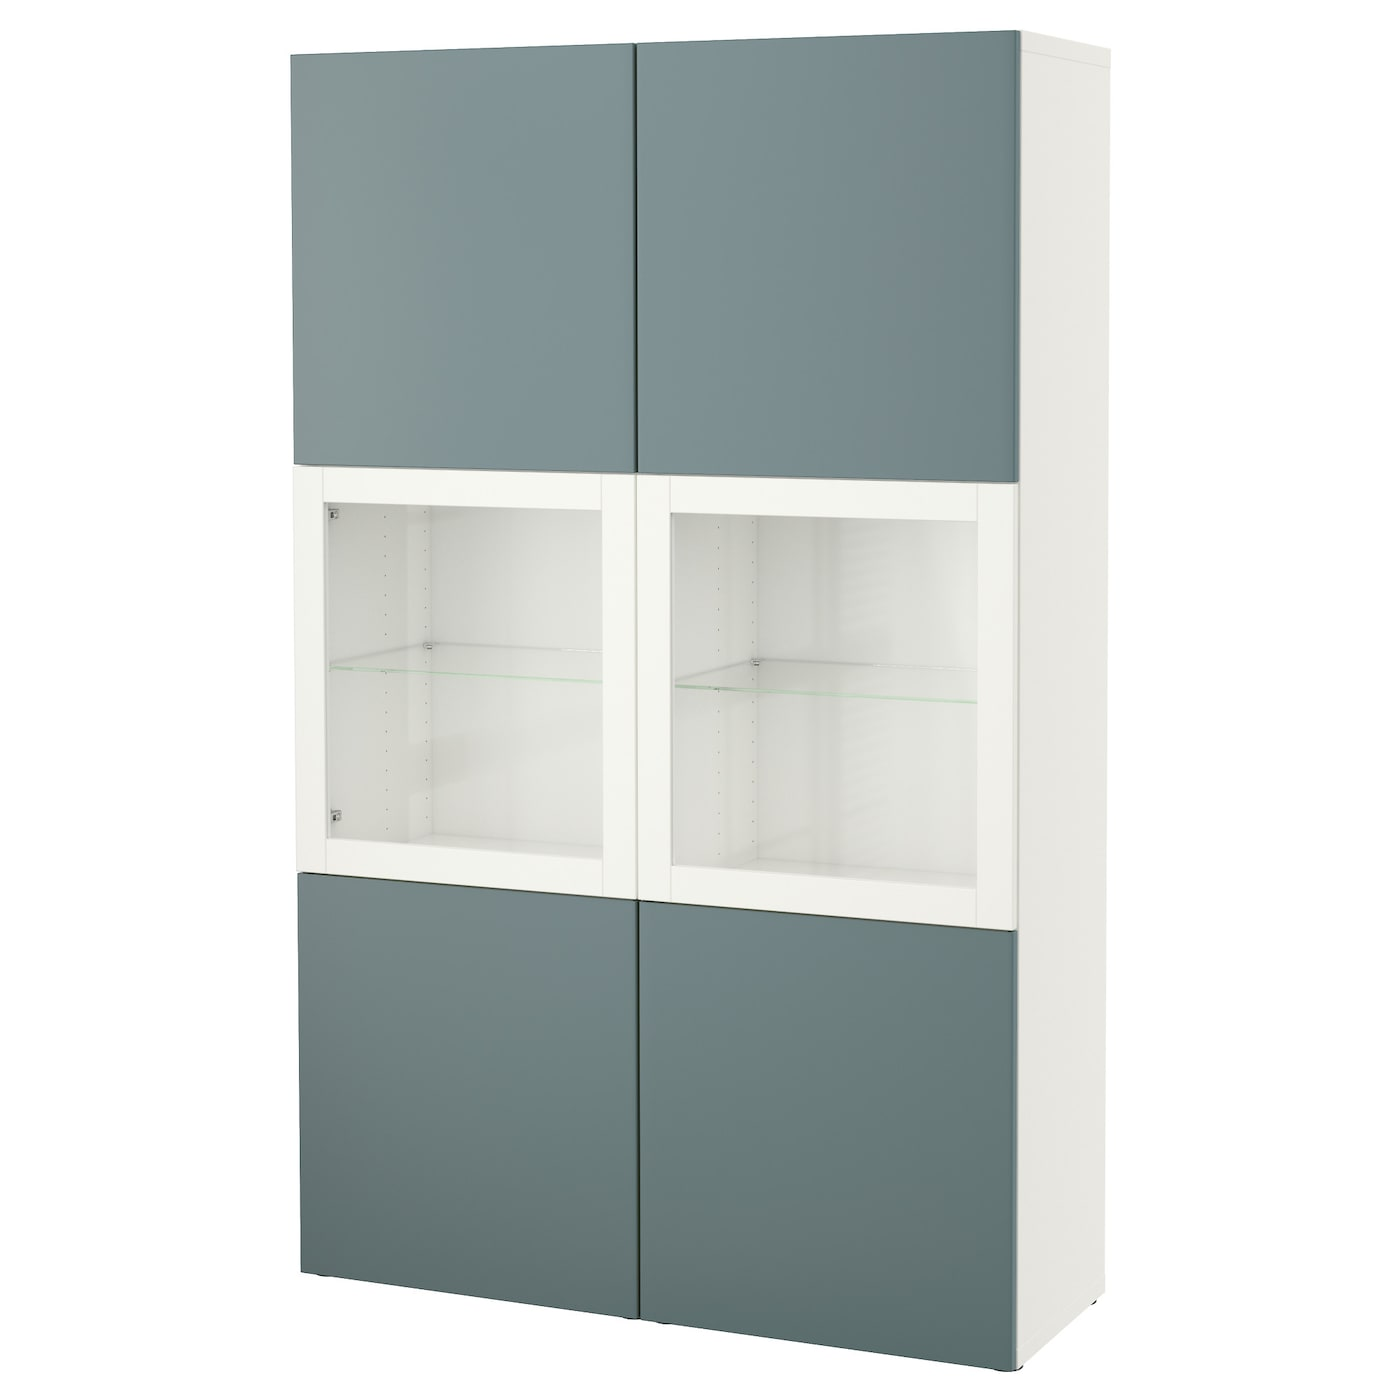 wall furniture shelves. IKEA BESTÅ Storage Combination W Glass Doors Wall Furniture Shelves L